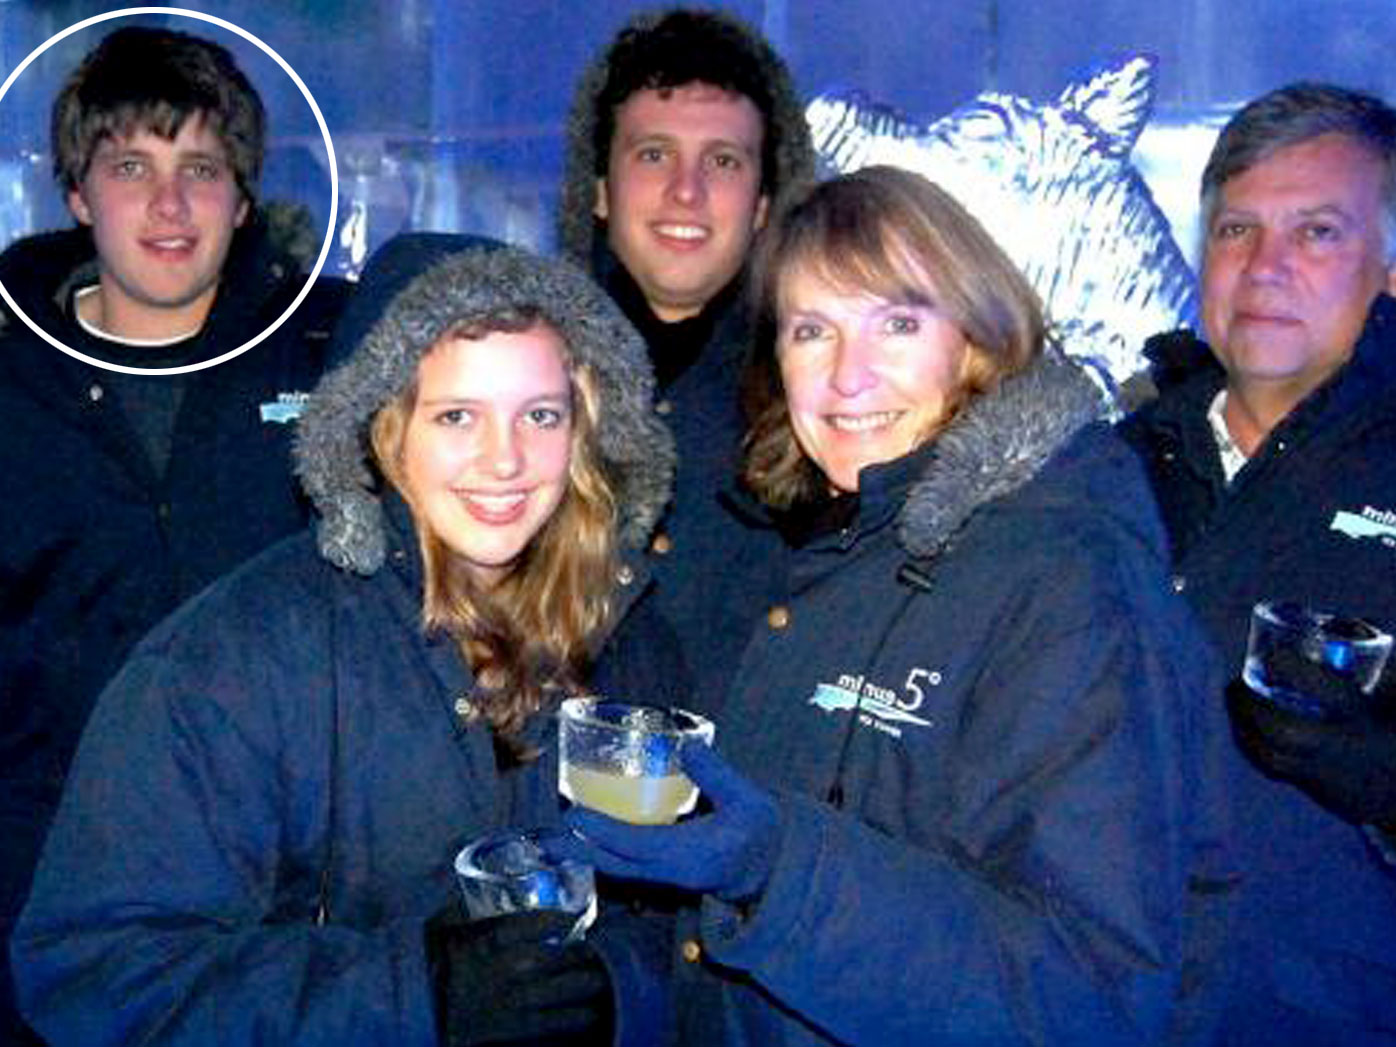 Henri van Breda, top left, with the family members he is alleged to have murdered.